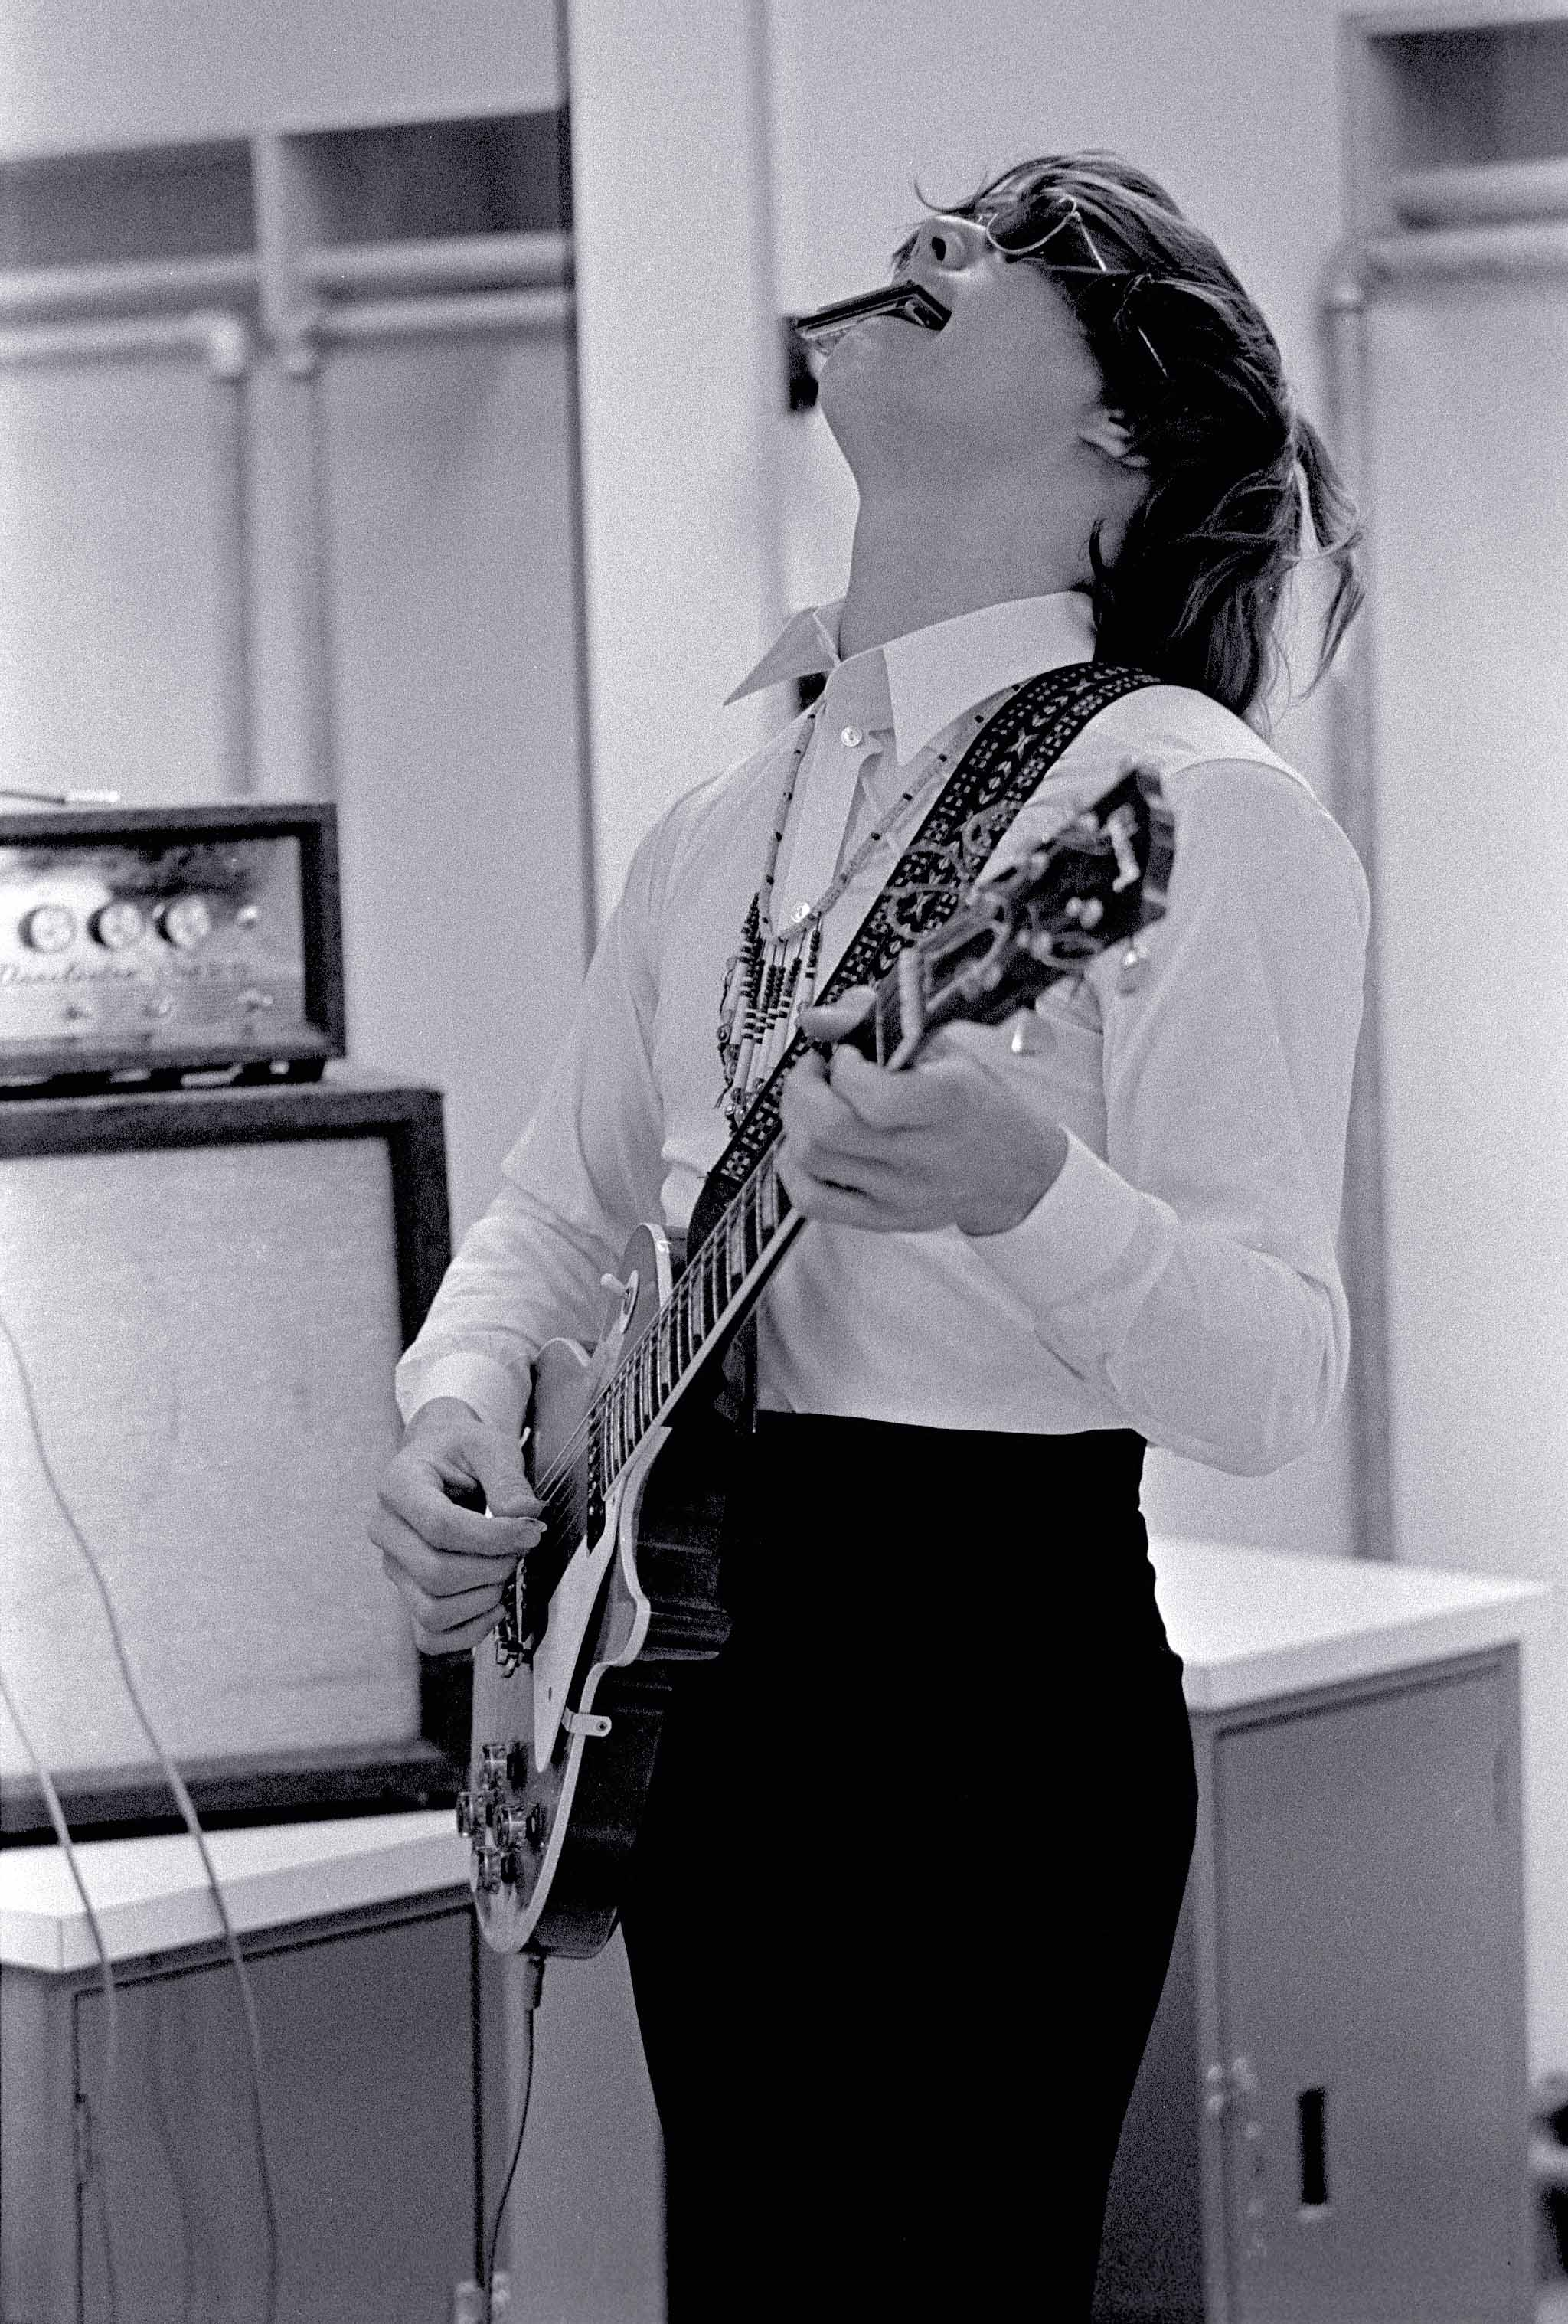 Steve Miller playing guitar and harmonica